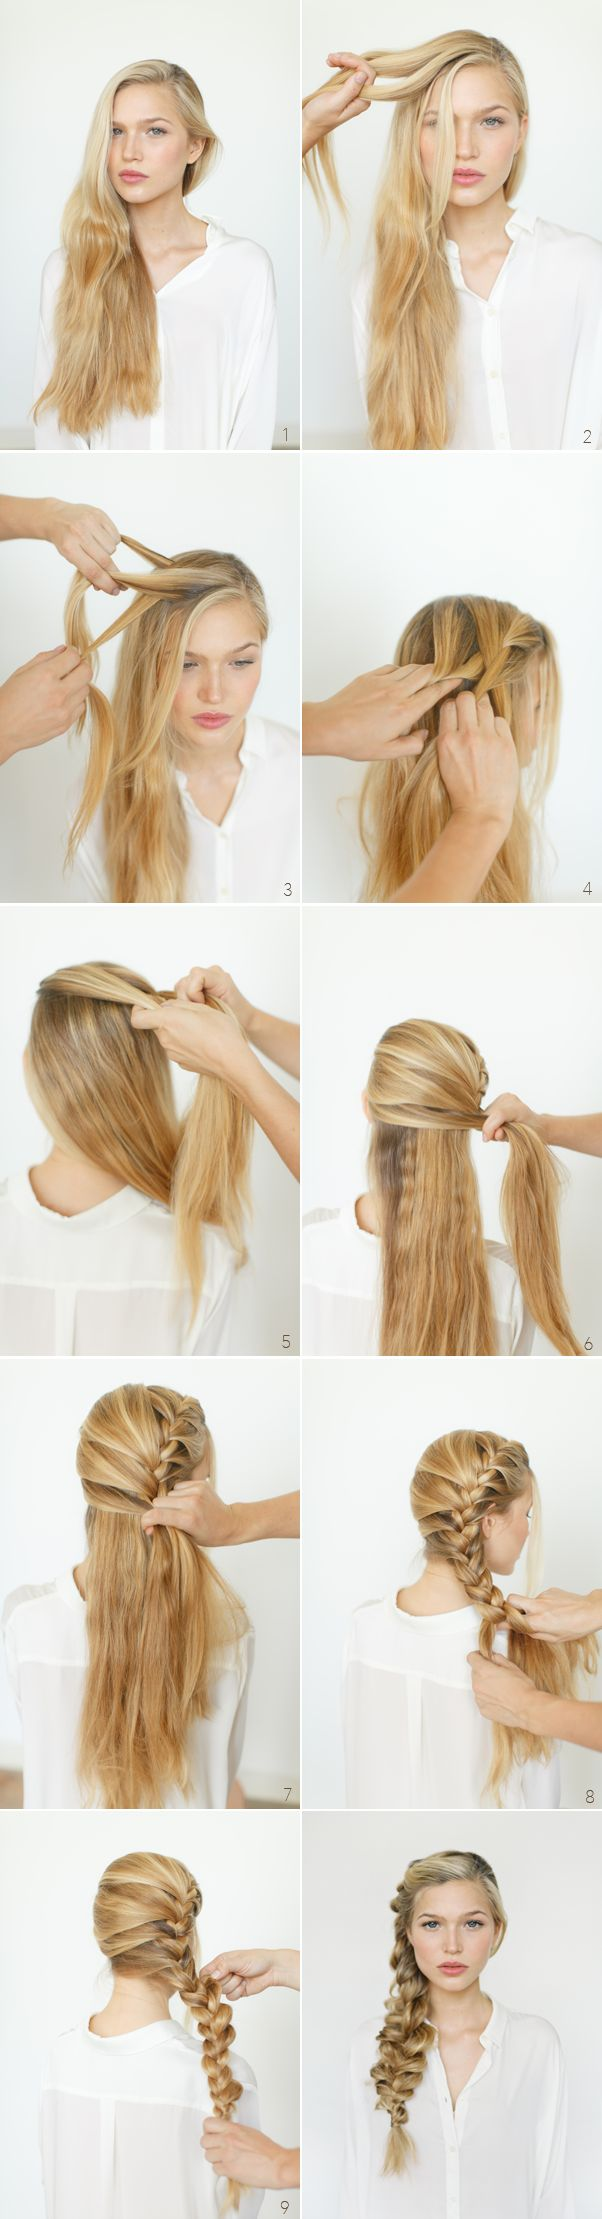 Romantic Side Braid Hair Tutorial